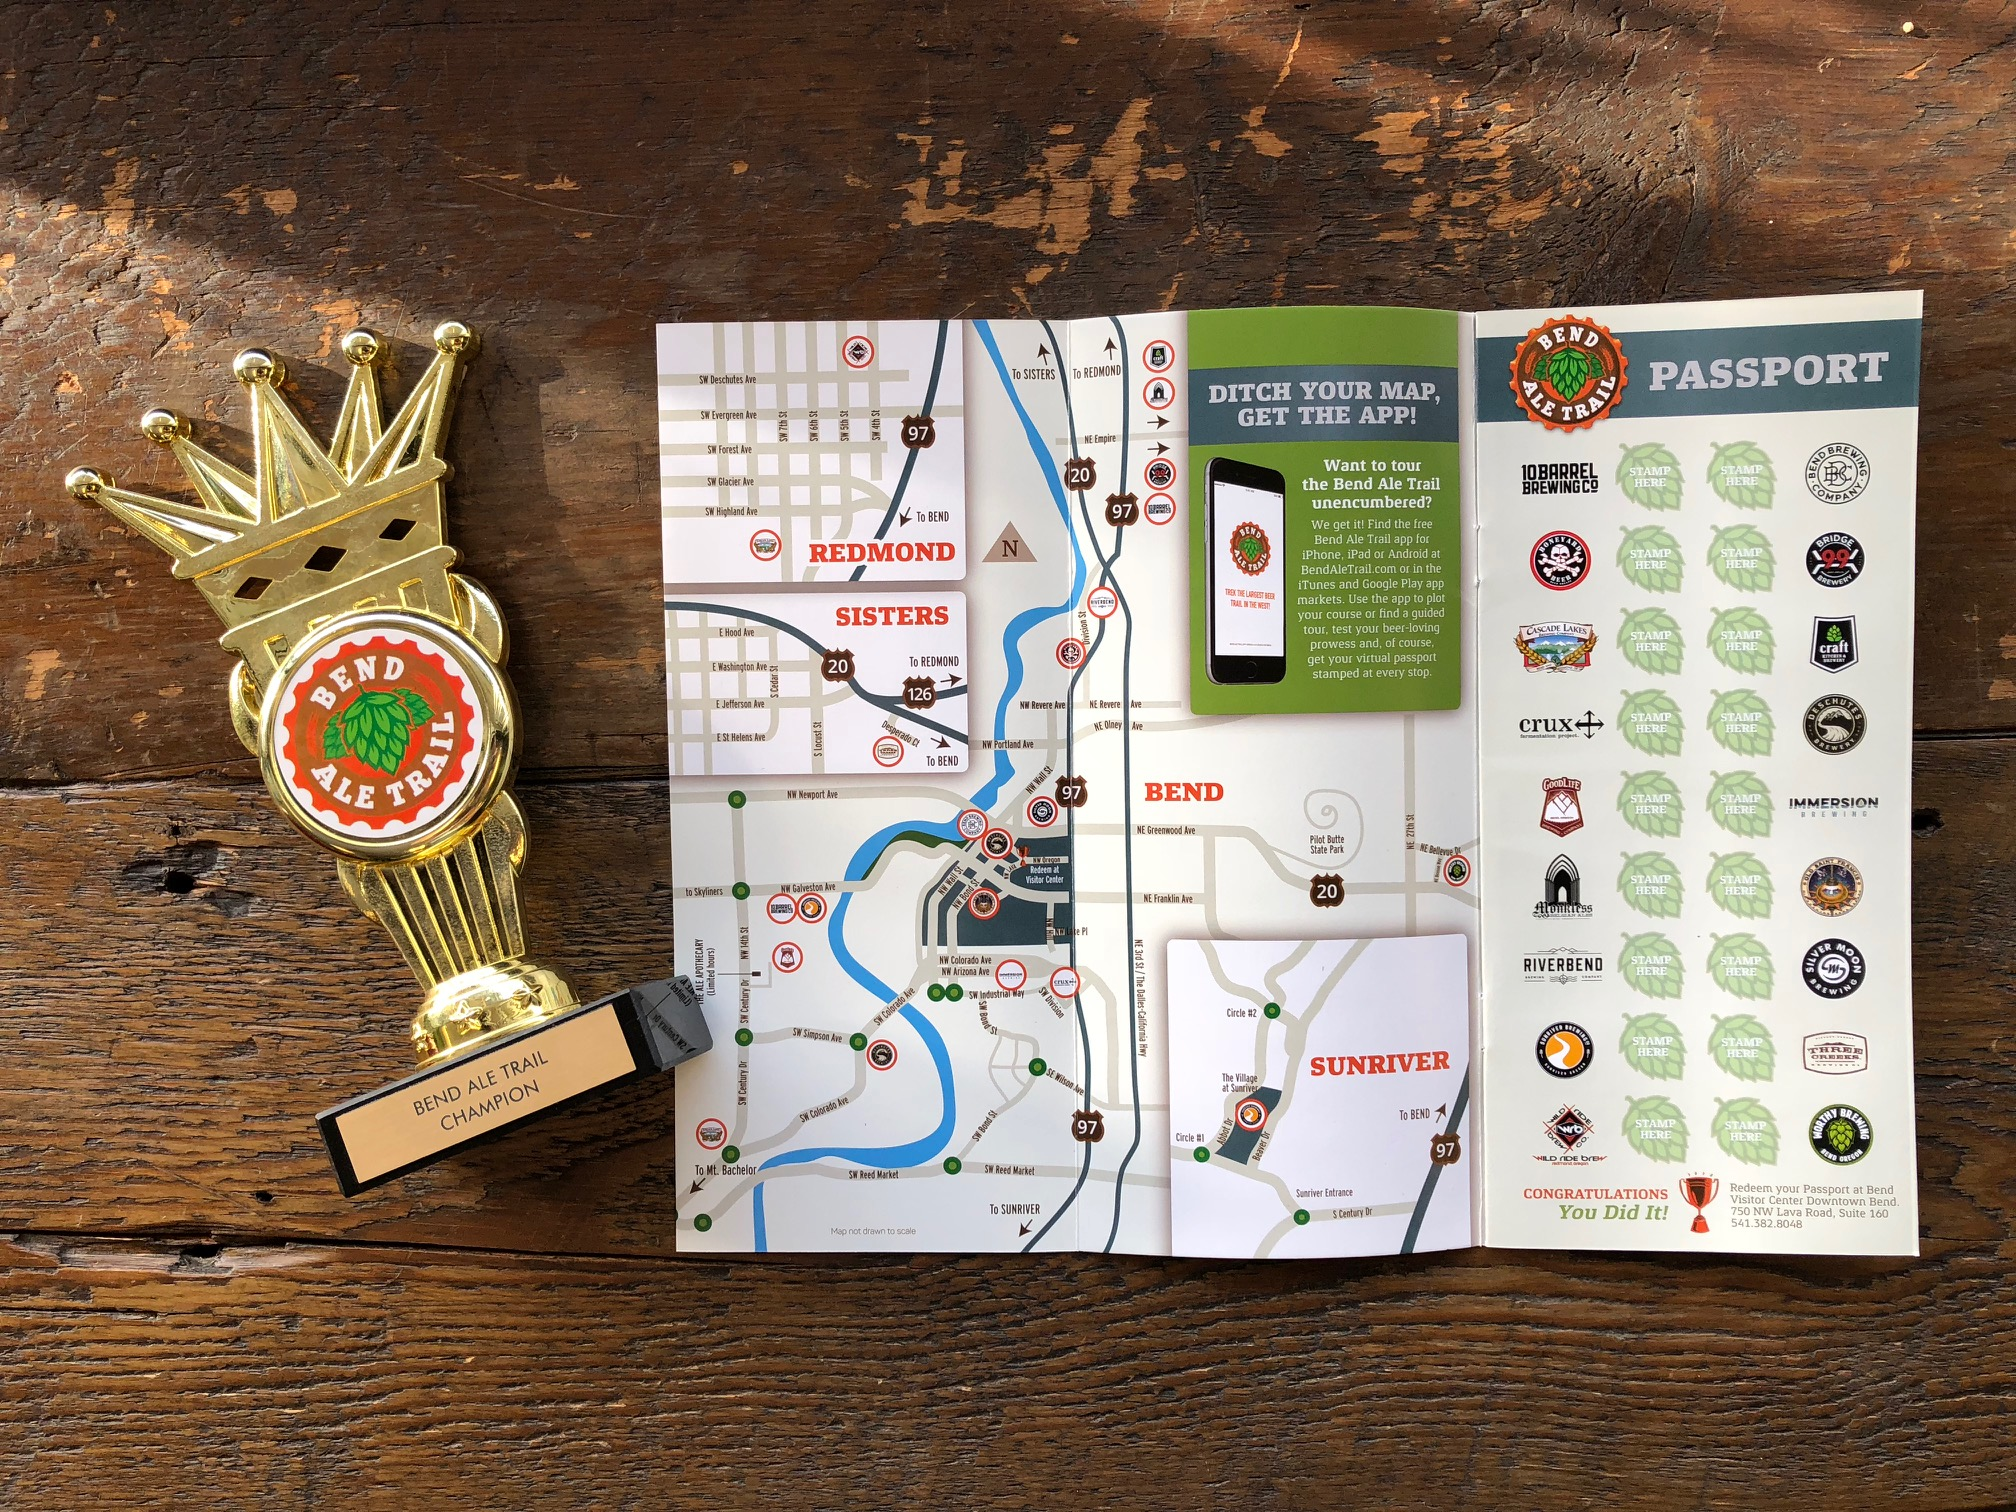 Become a Bend Ale Trail champ!